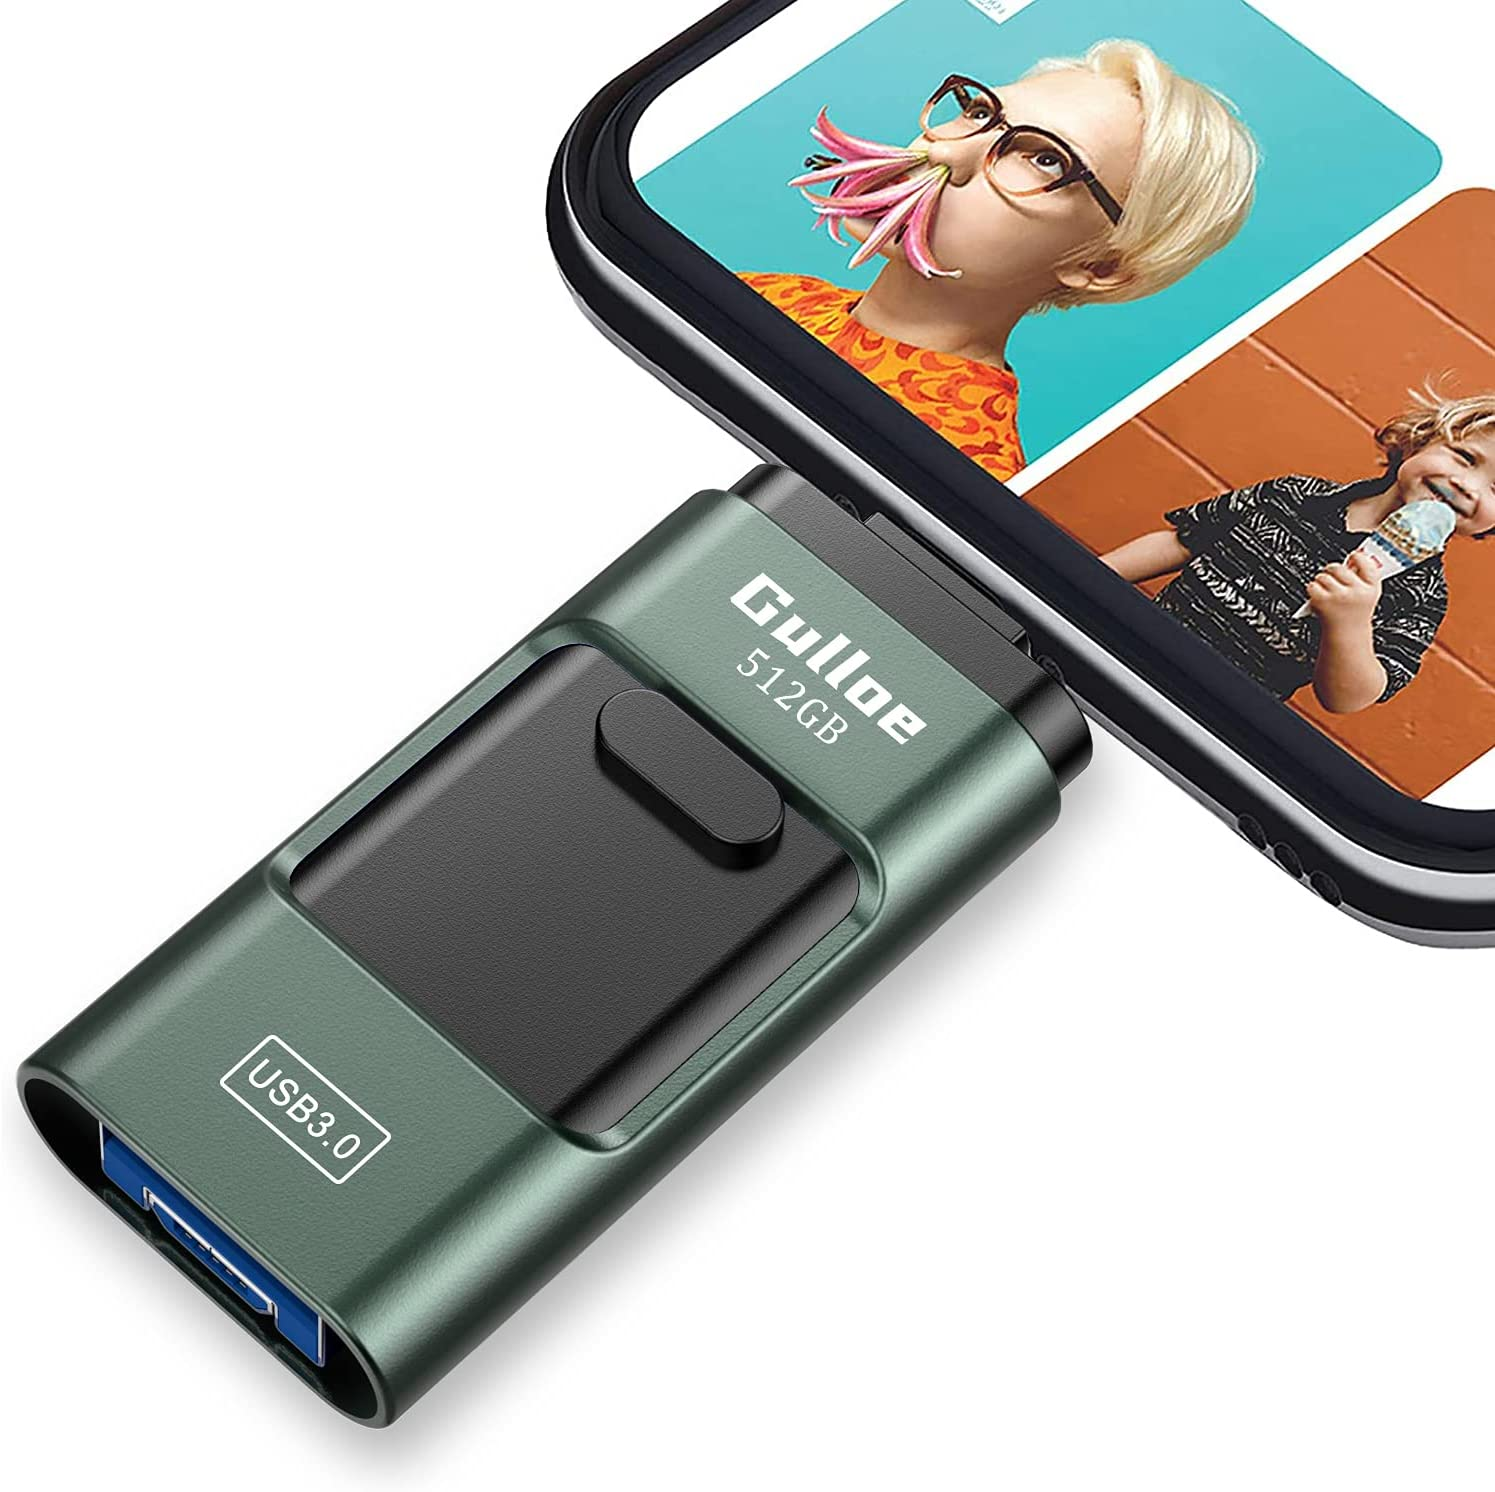 Gulloe USB3.0 Flash Drive 512GB, USB Memory Stick External Storage Thumb Drive Photo Stick Compatible with iPhone, Android, Computer and More Devices (Dark Green)